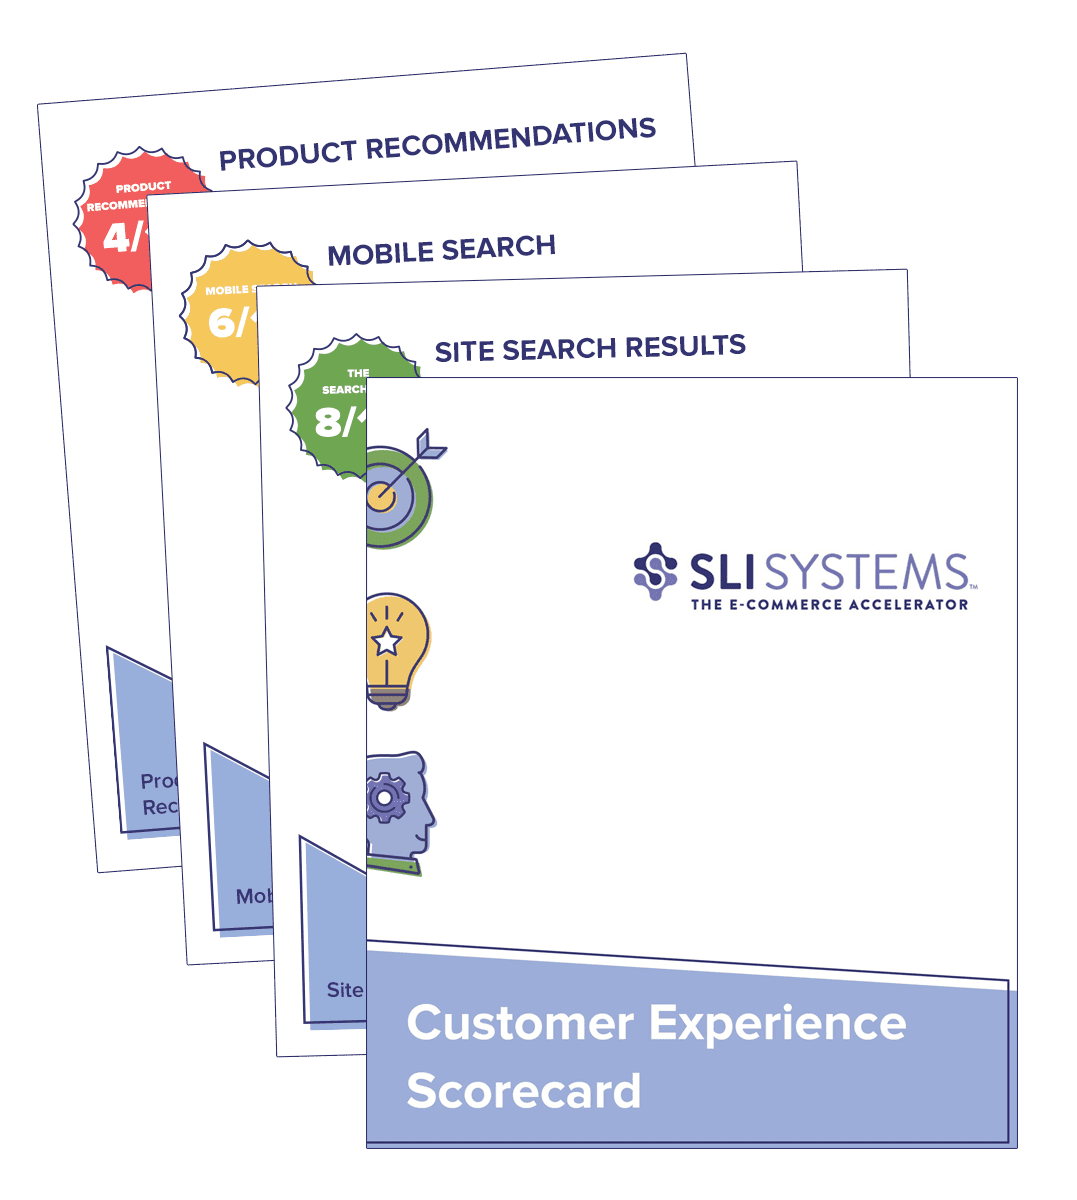 Customer Experience Scorecard